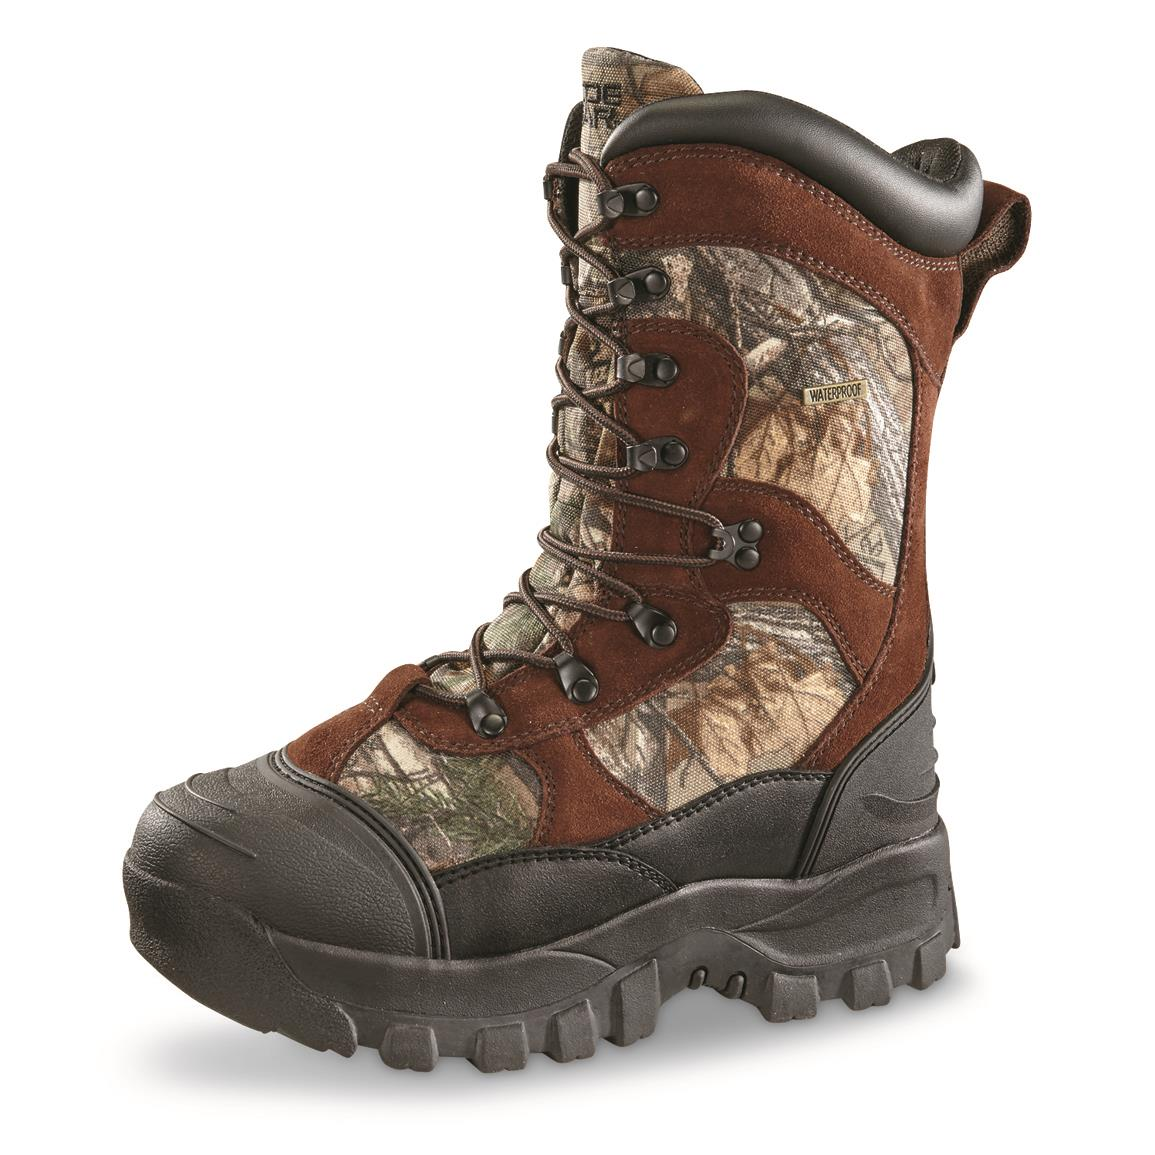 Guide Gear Men's Monolithic Hunting Boots, Insulated, Waterproof, Realtree Xtra Brown